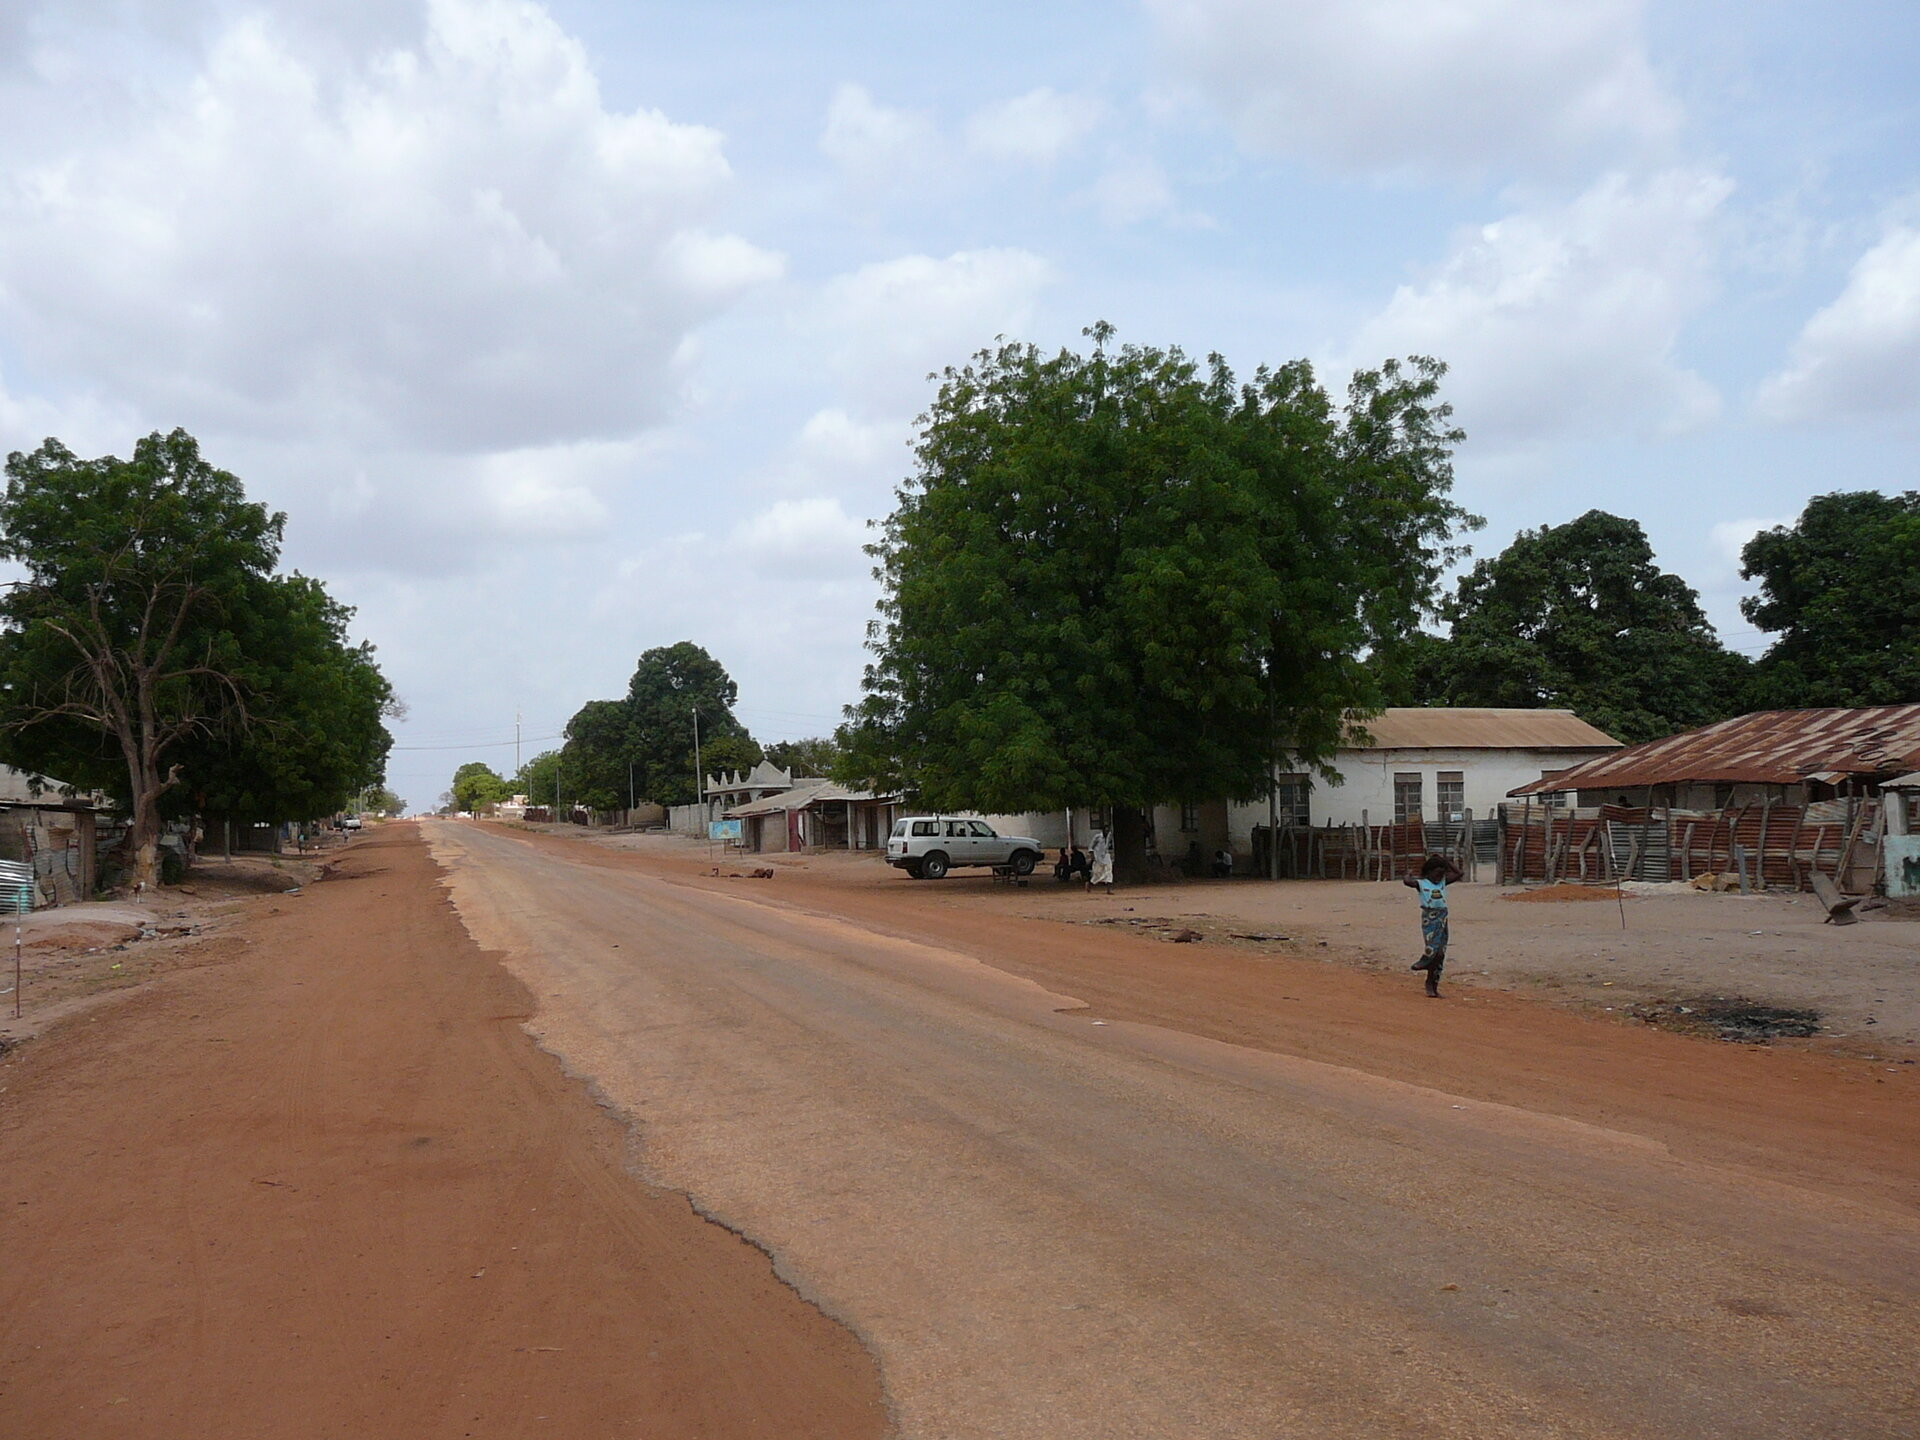 Gambia_Bwiam_0005